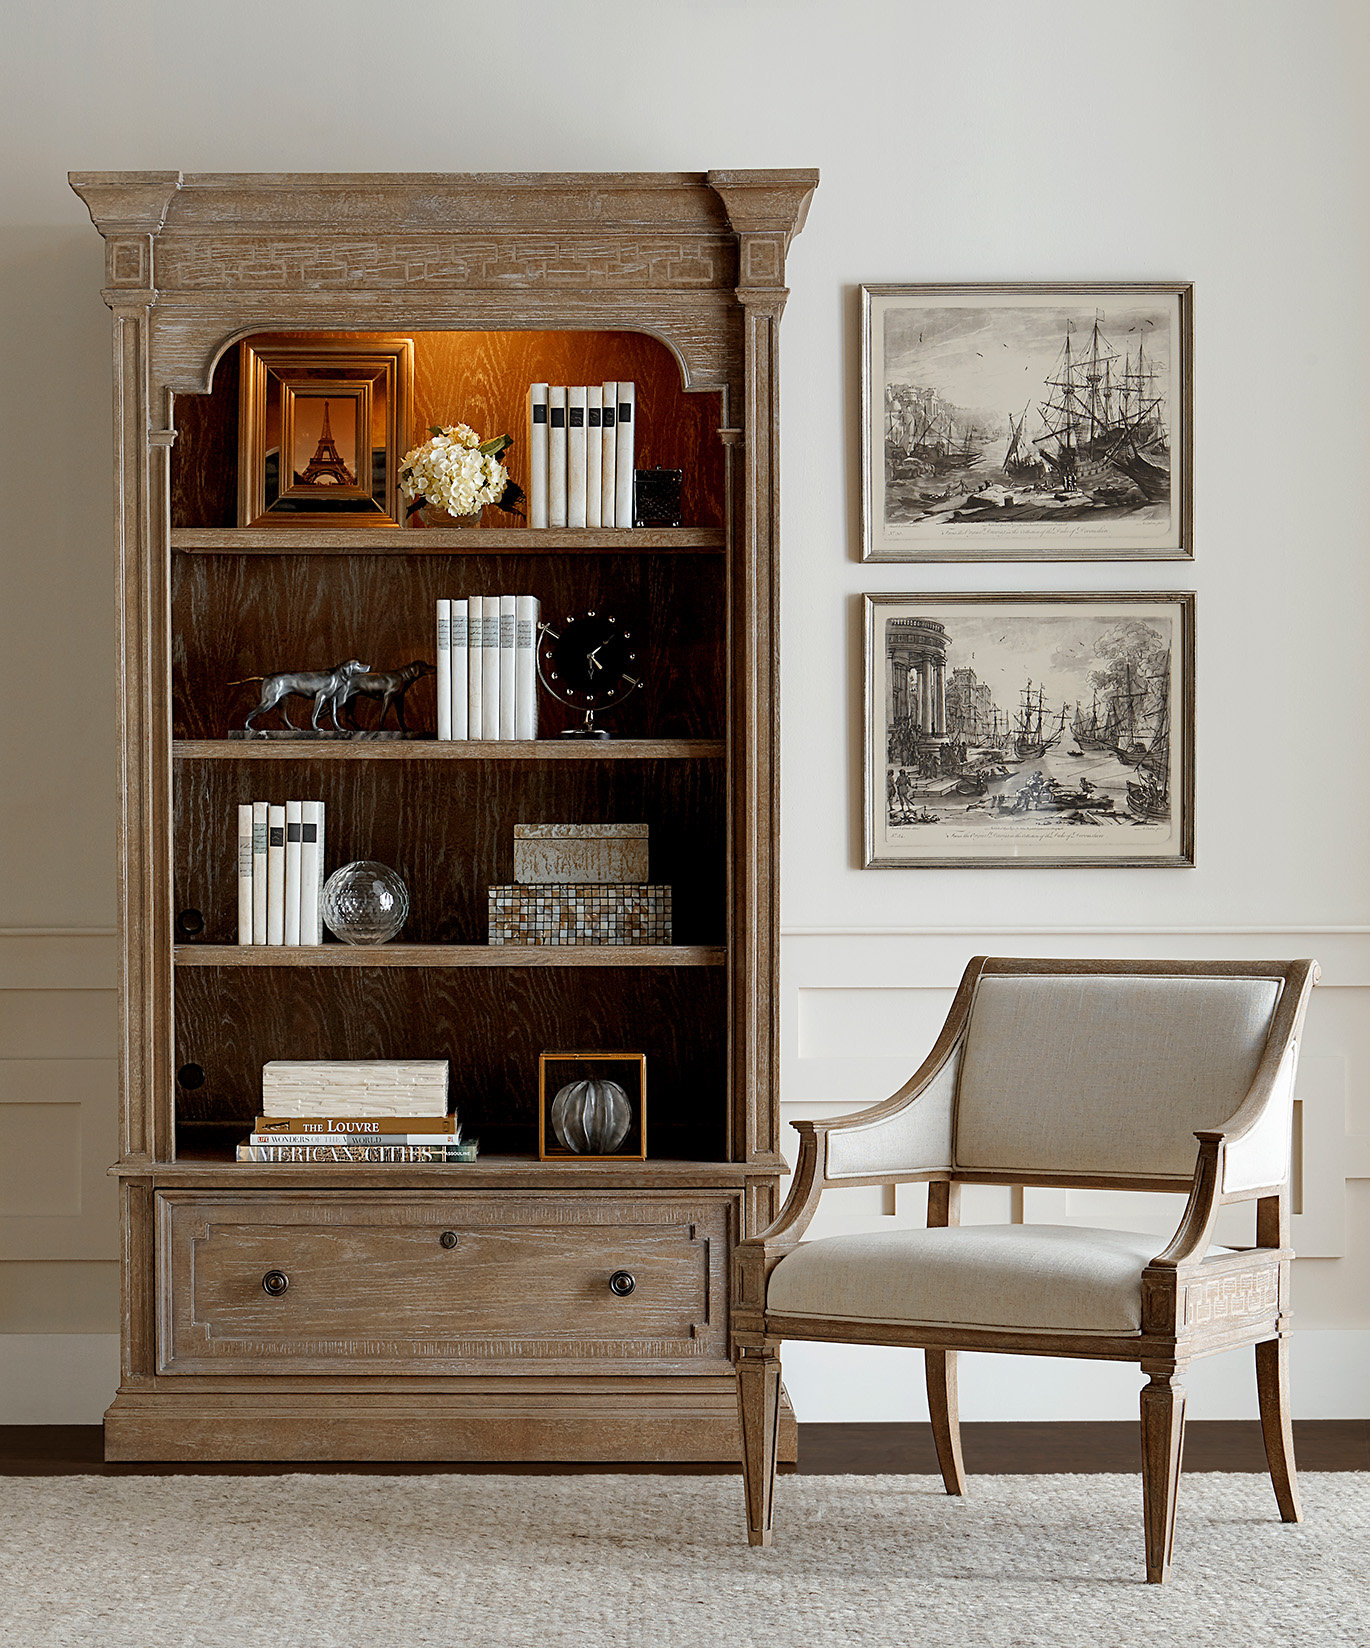 Stanley Weathersfield State bookcase